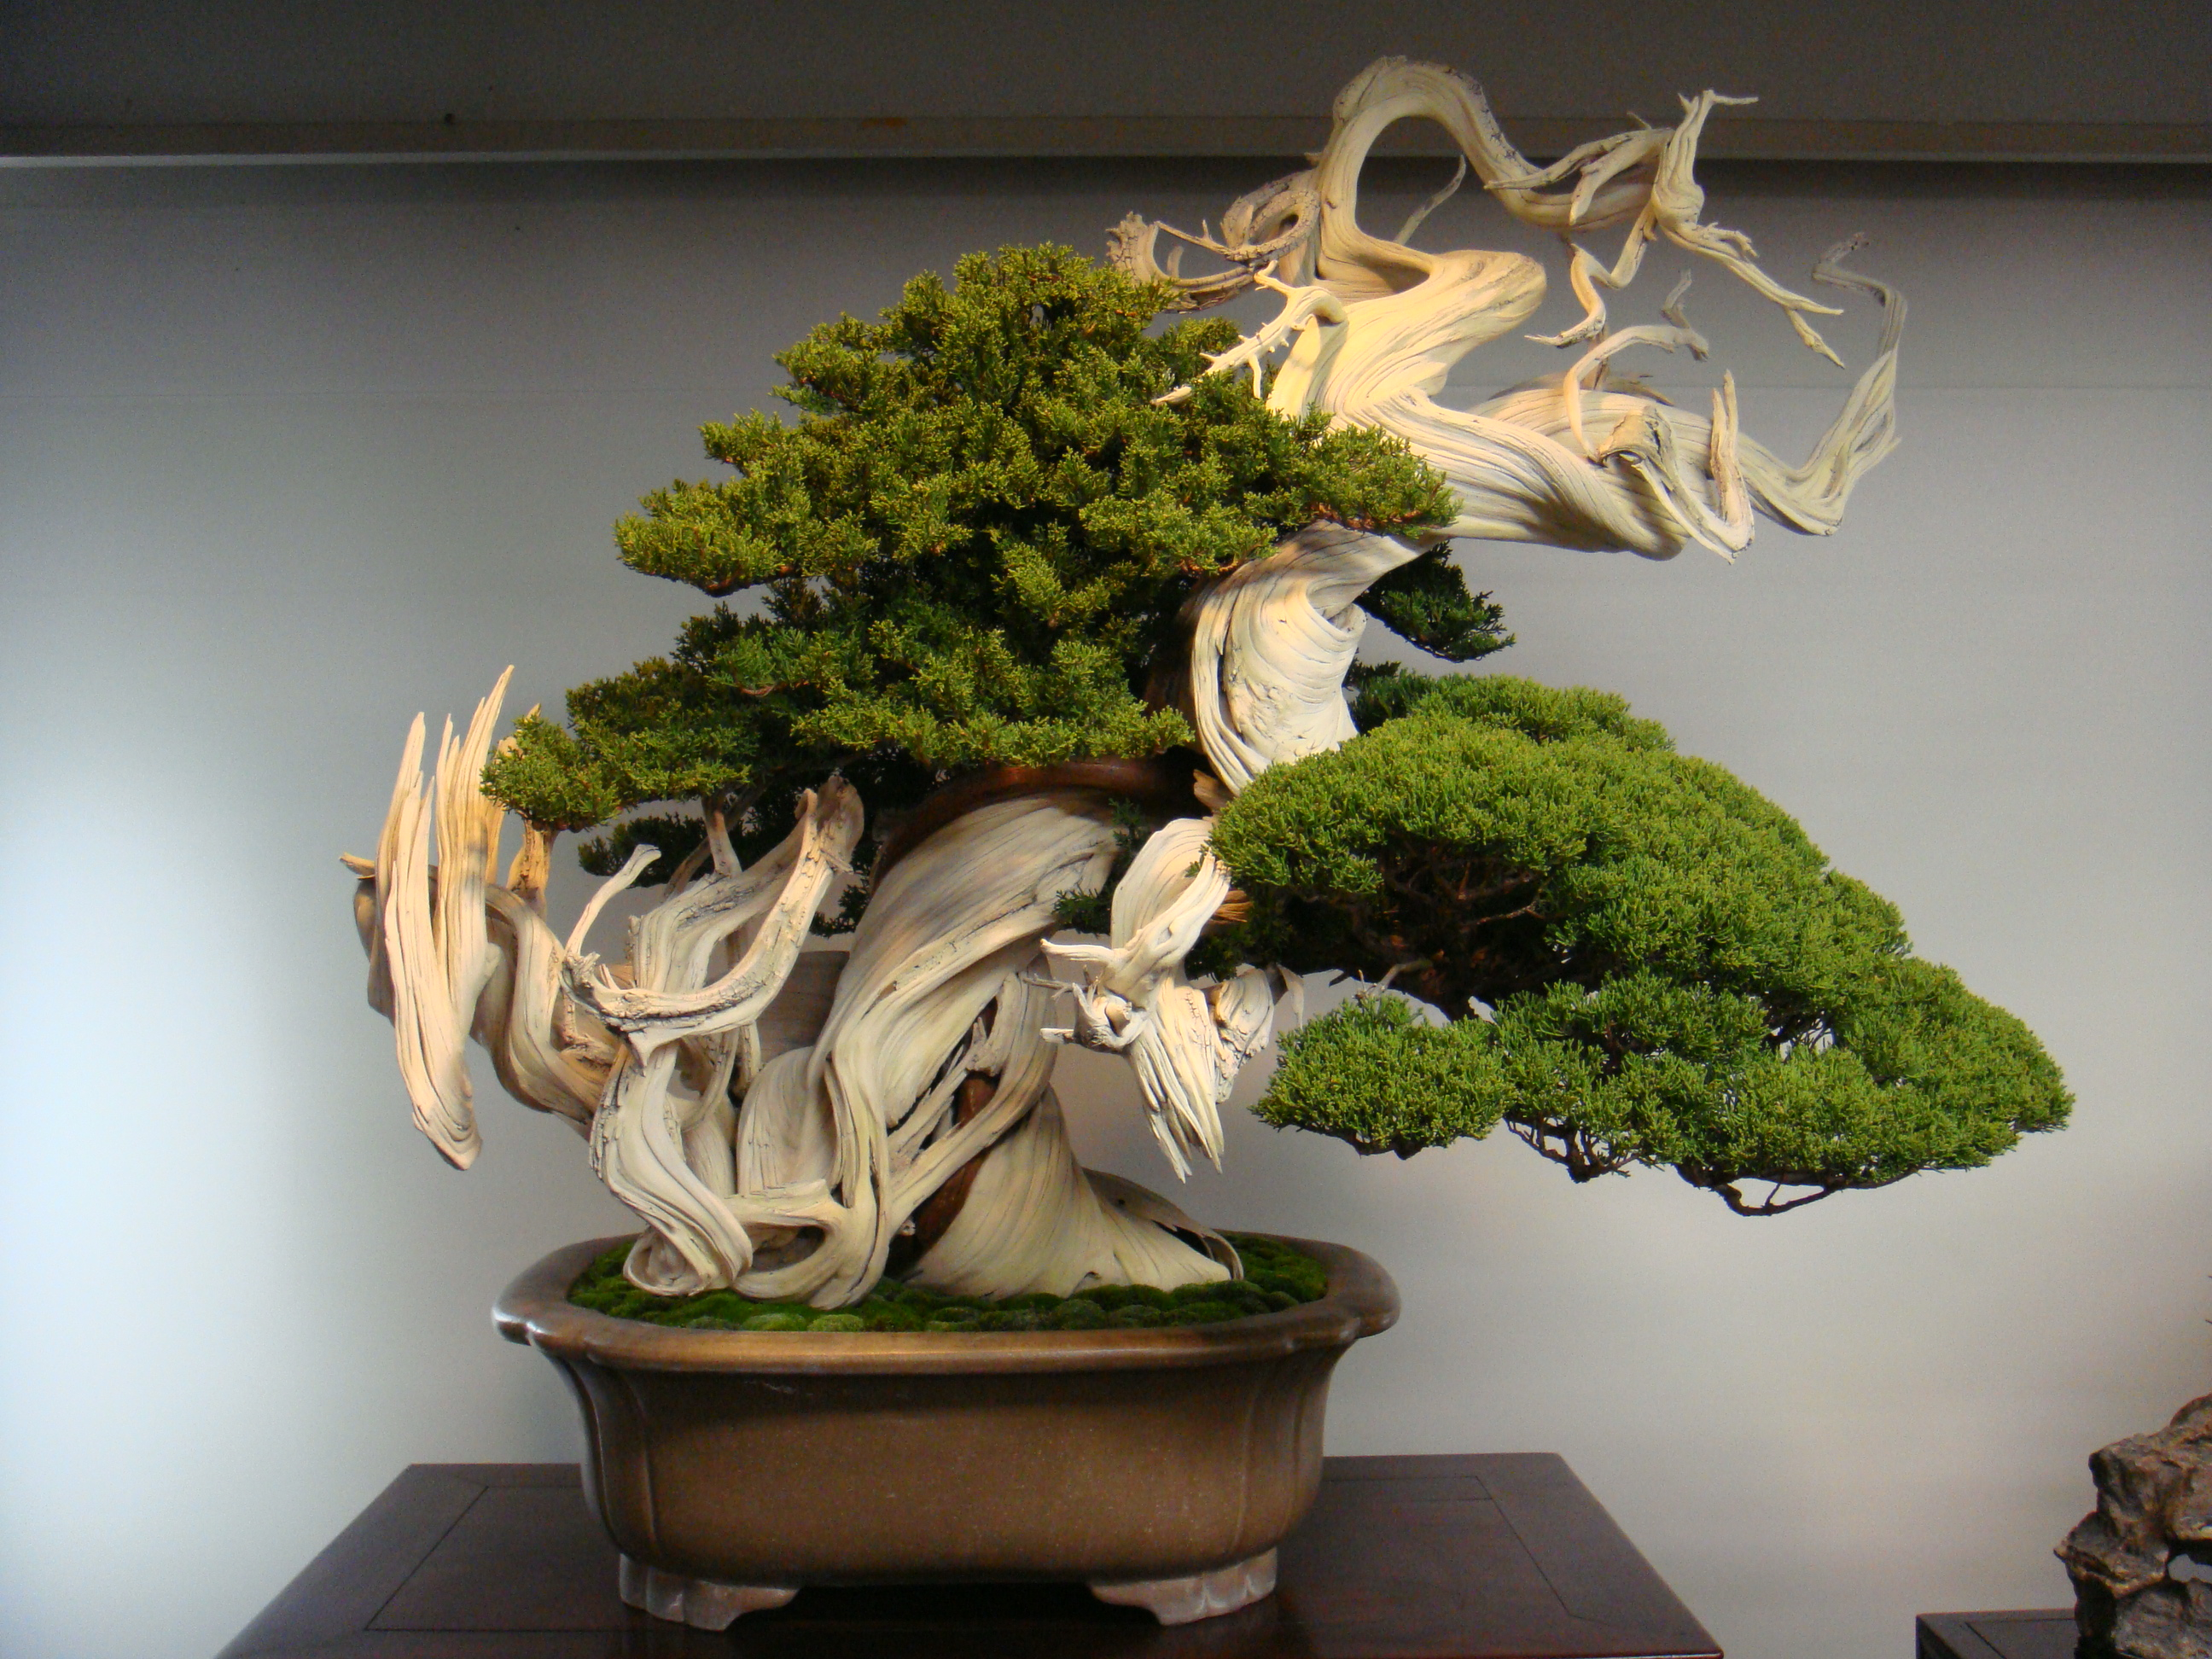 The-Most-Beautiful-And-Unique-Bonsai-Trees-In-The-World-homesthetics-27